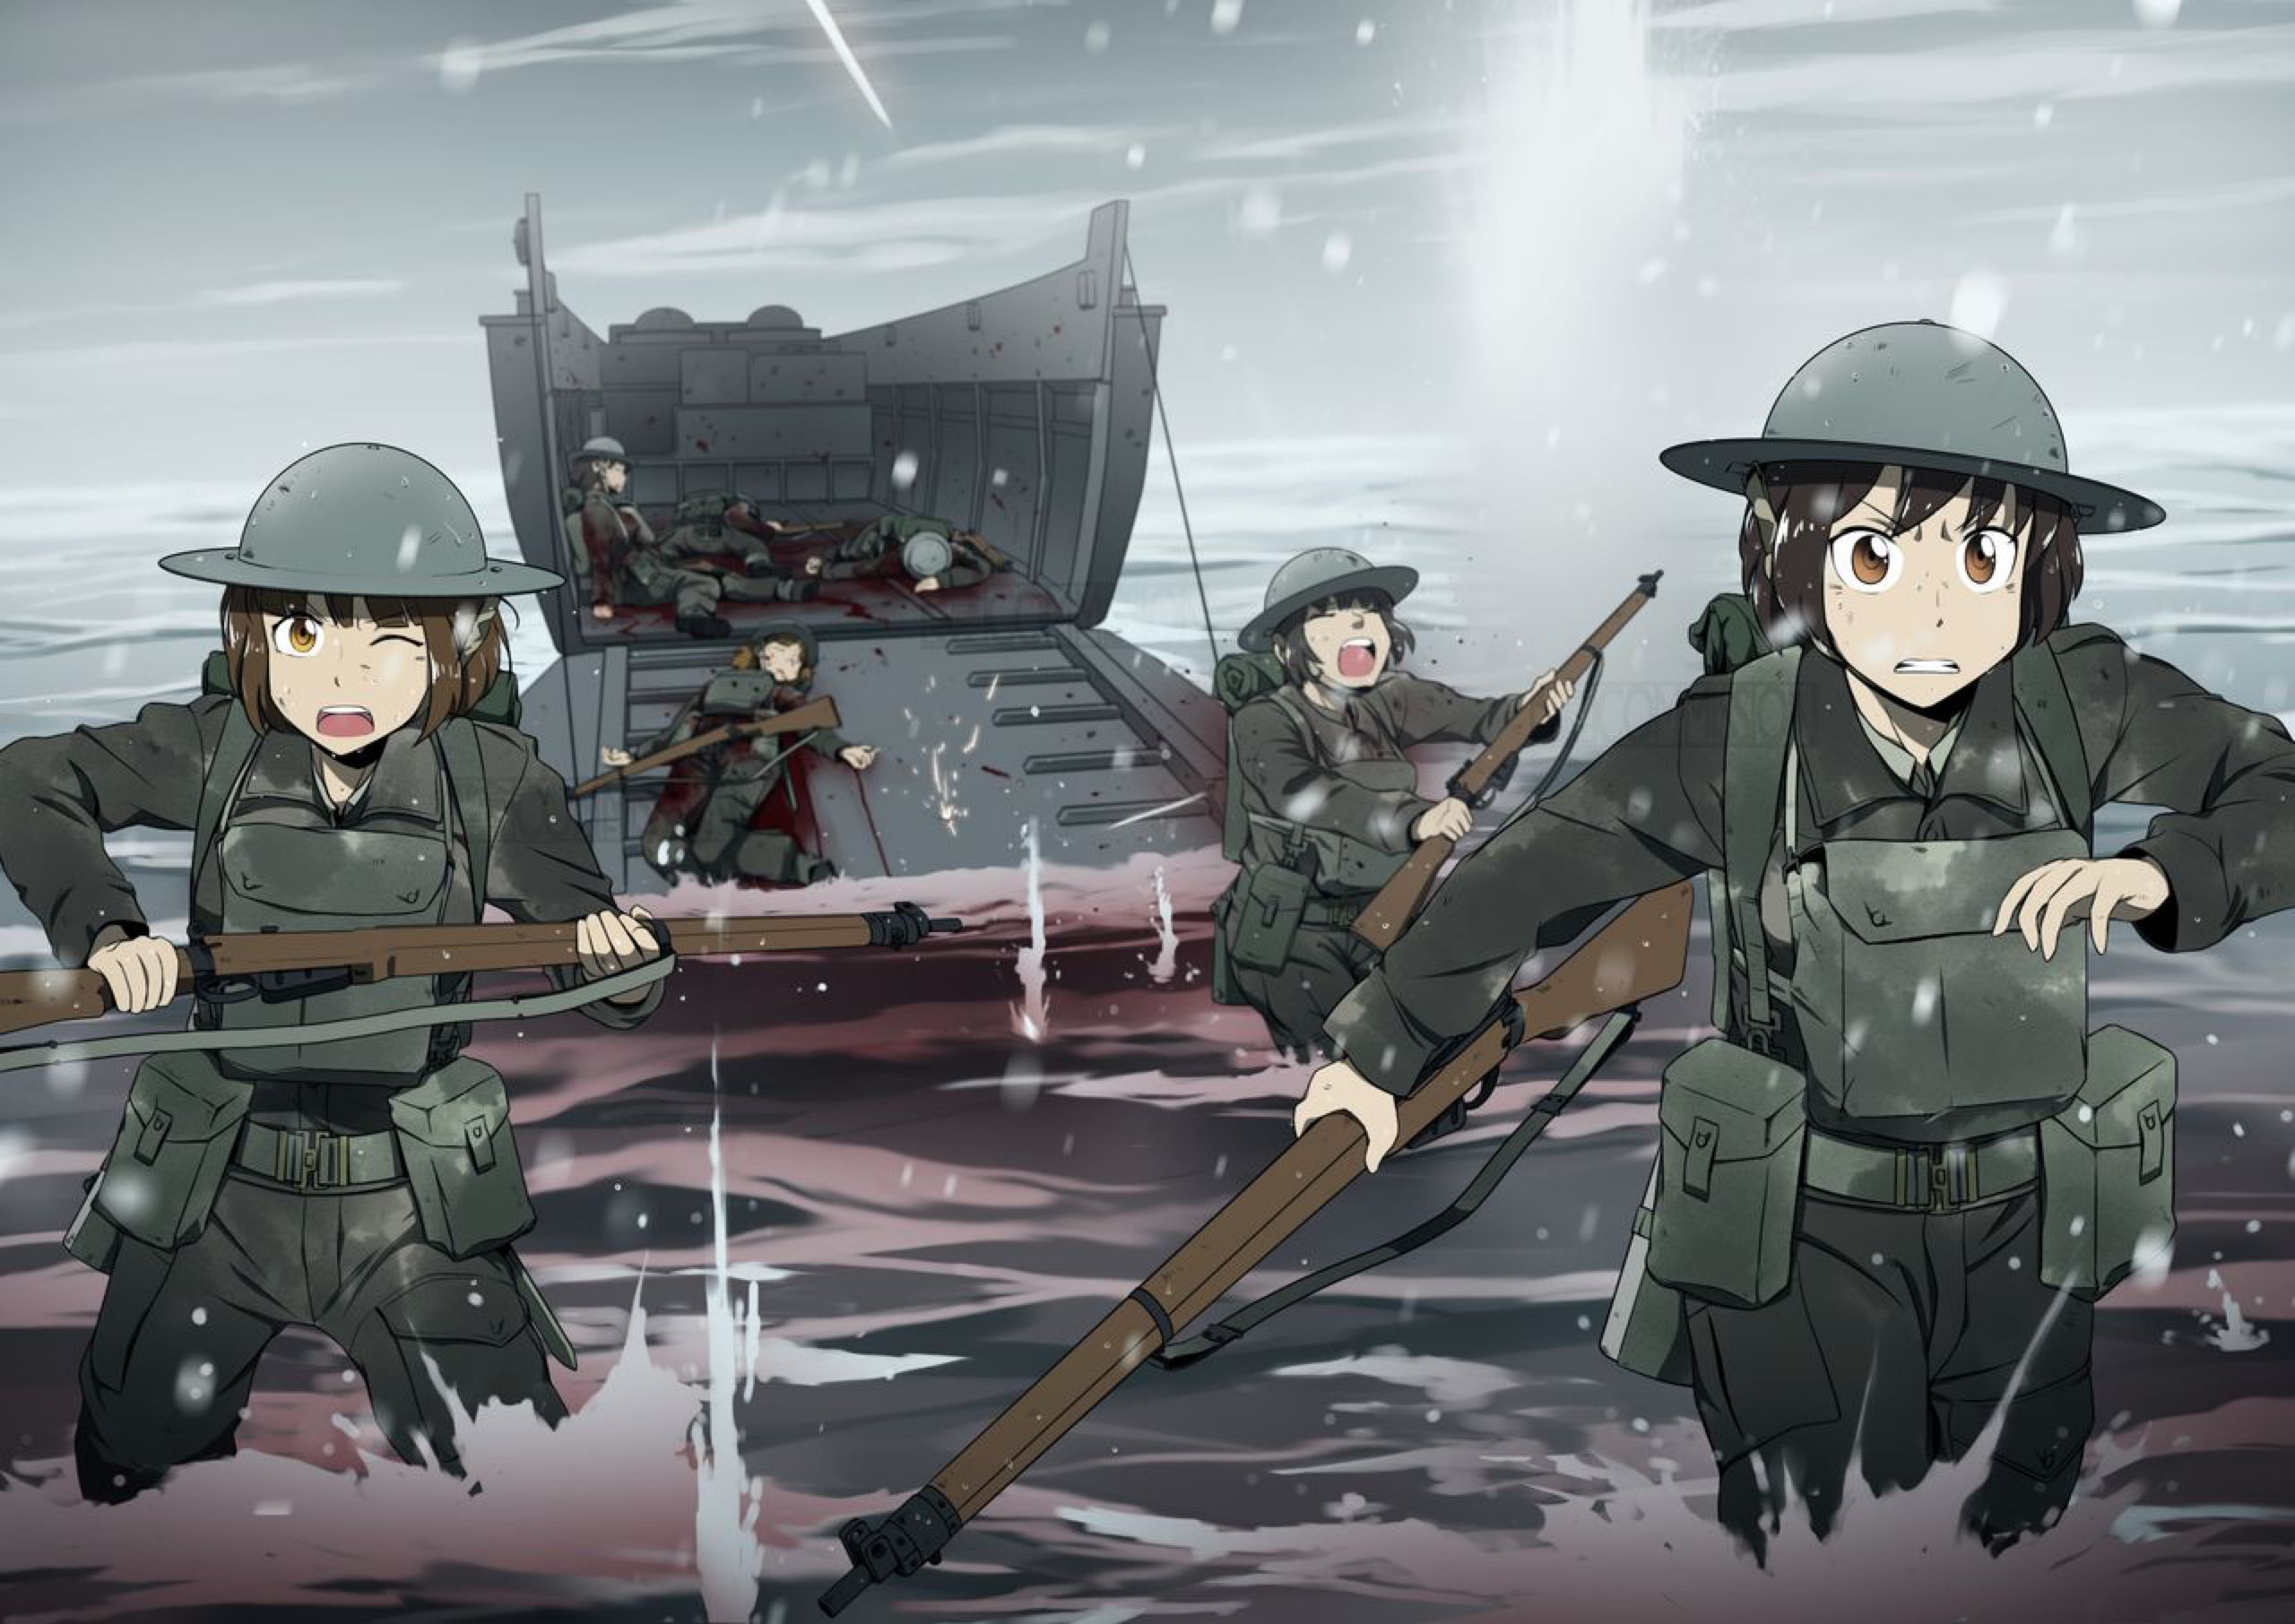 Comm Get To The Beach By Xinom On Deviantart Anime Military